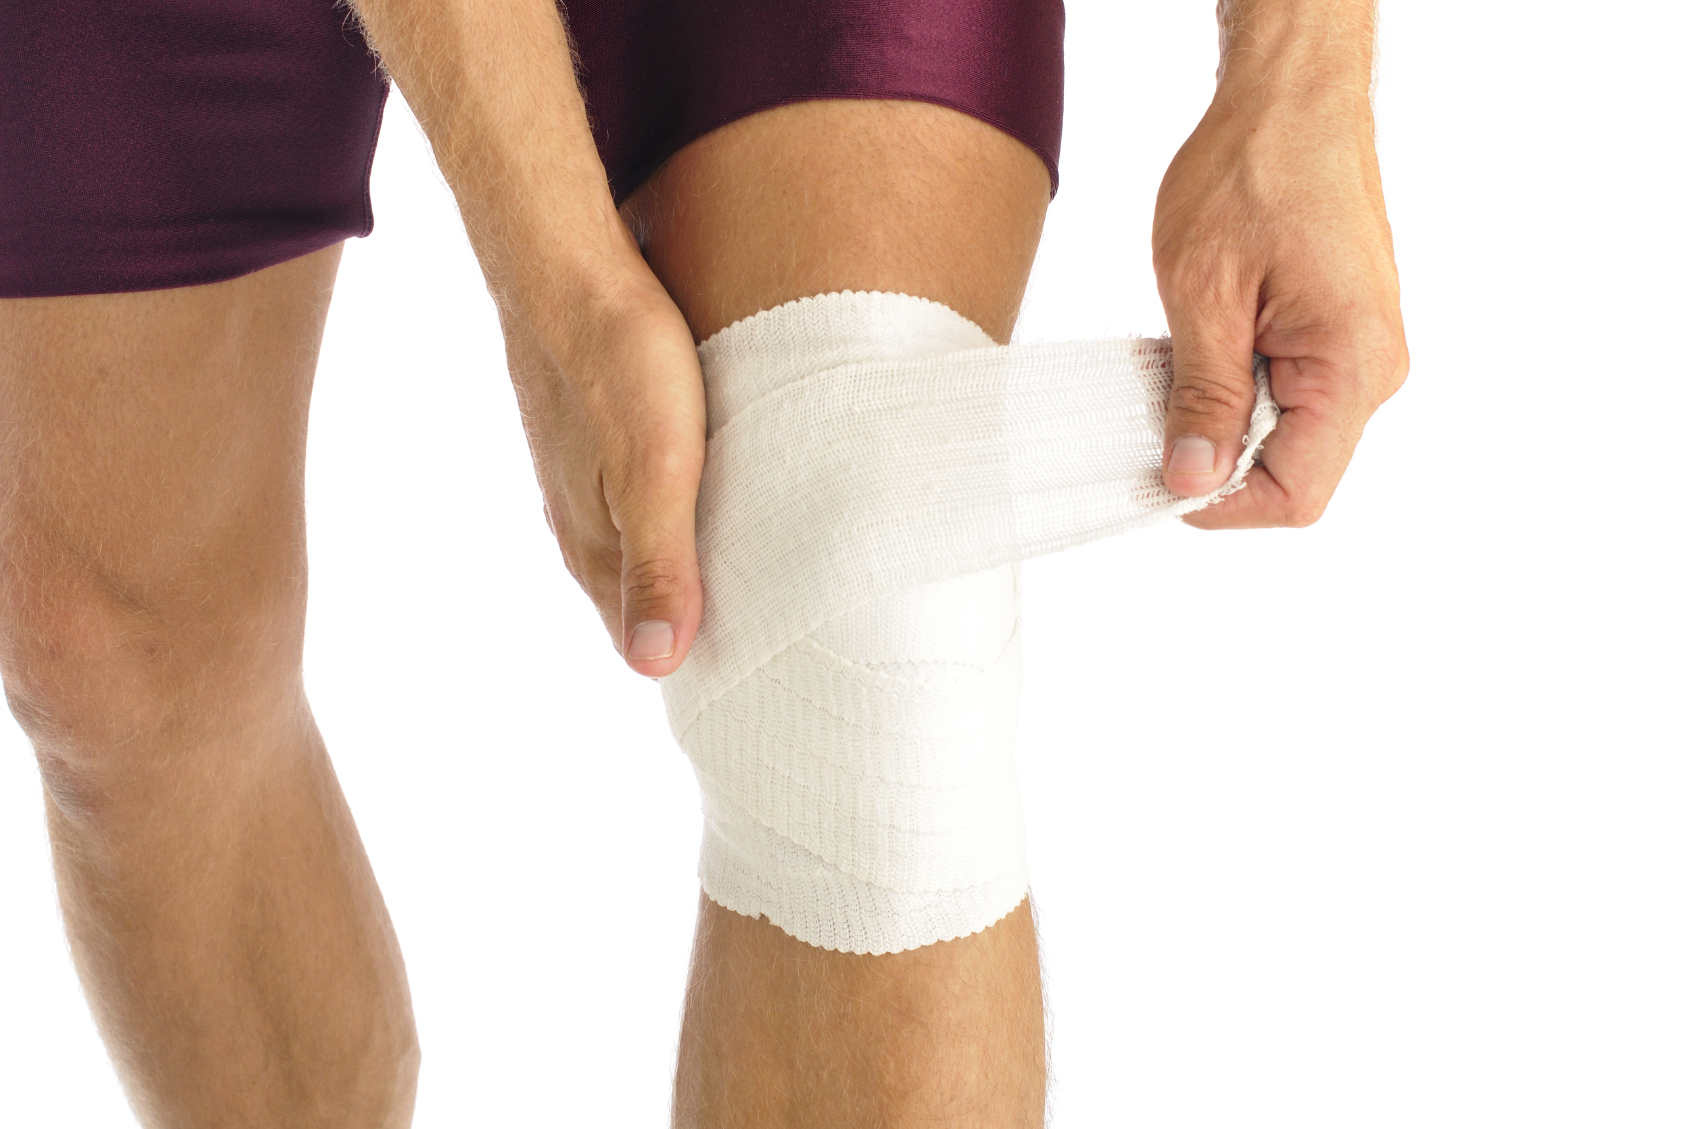 Common Sports Injuries And Treatment